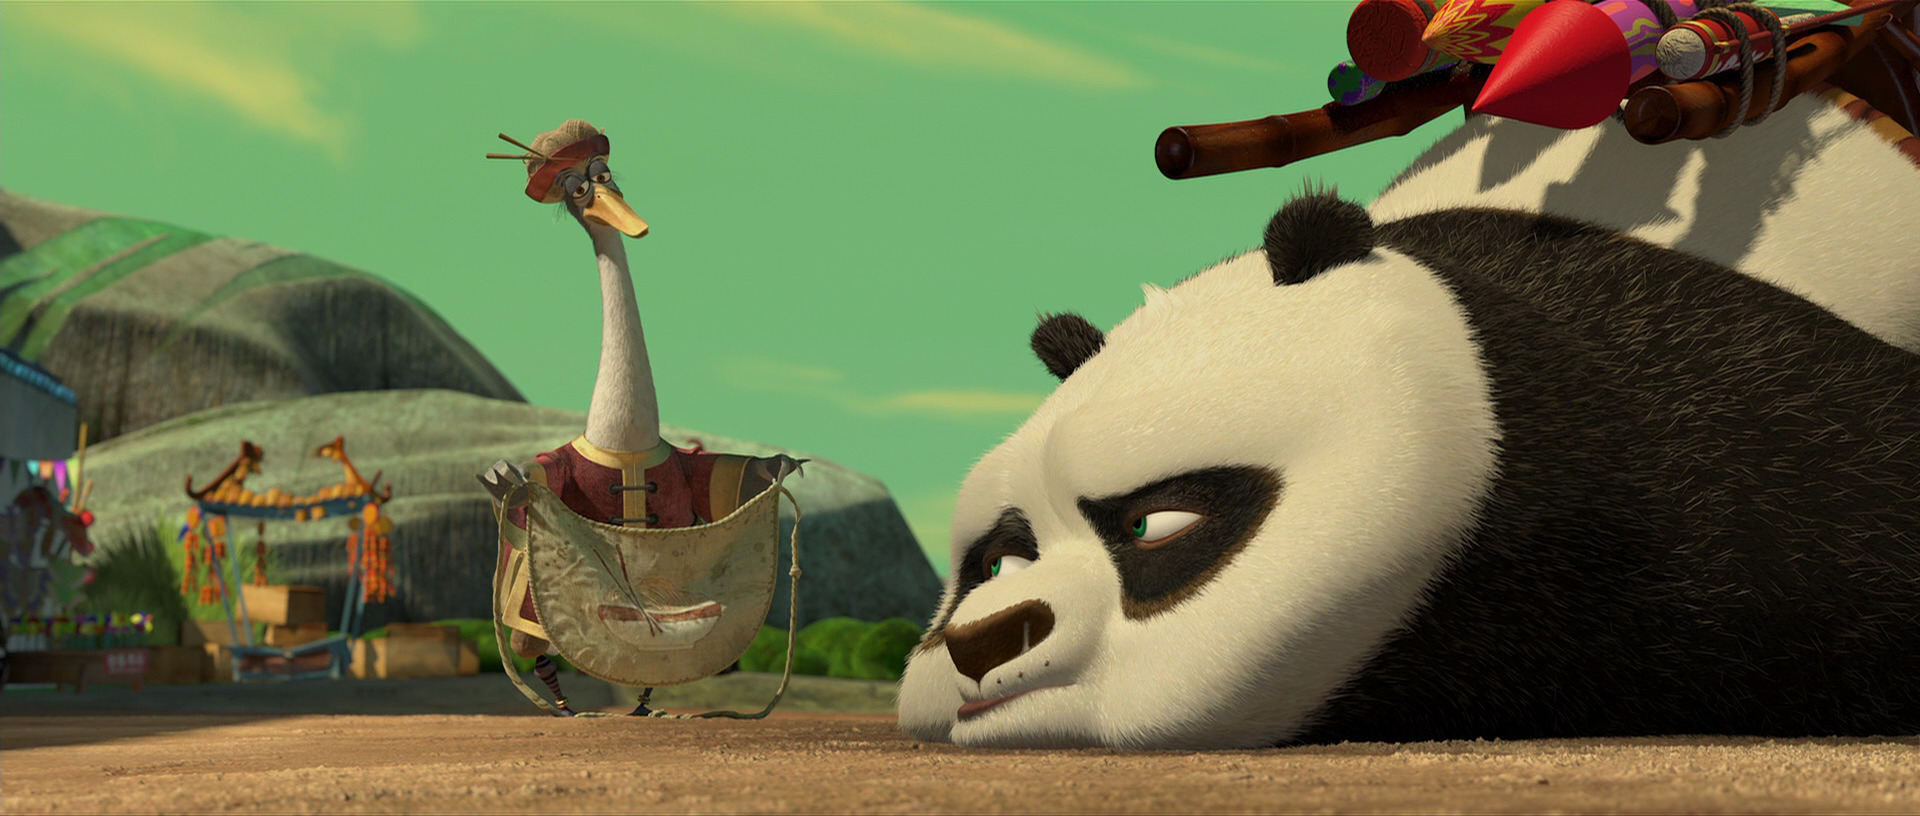 Mr Ping urging Po to get back to work. Credit: kungfupanda.wikia.com